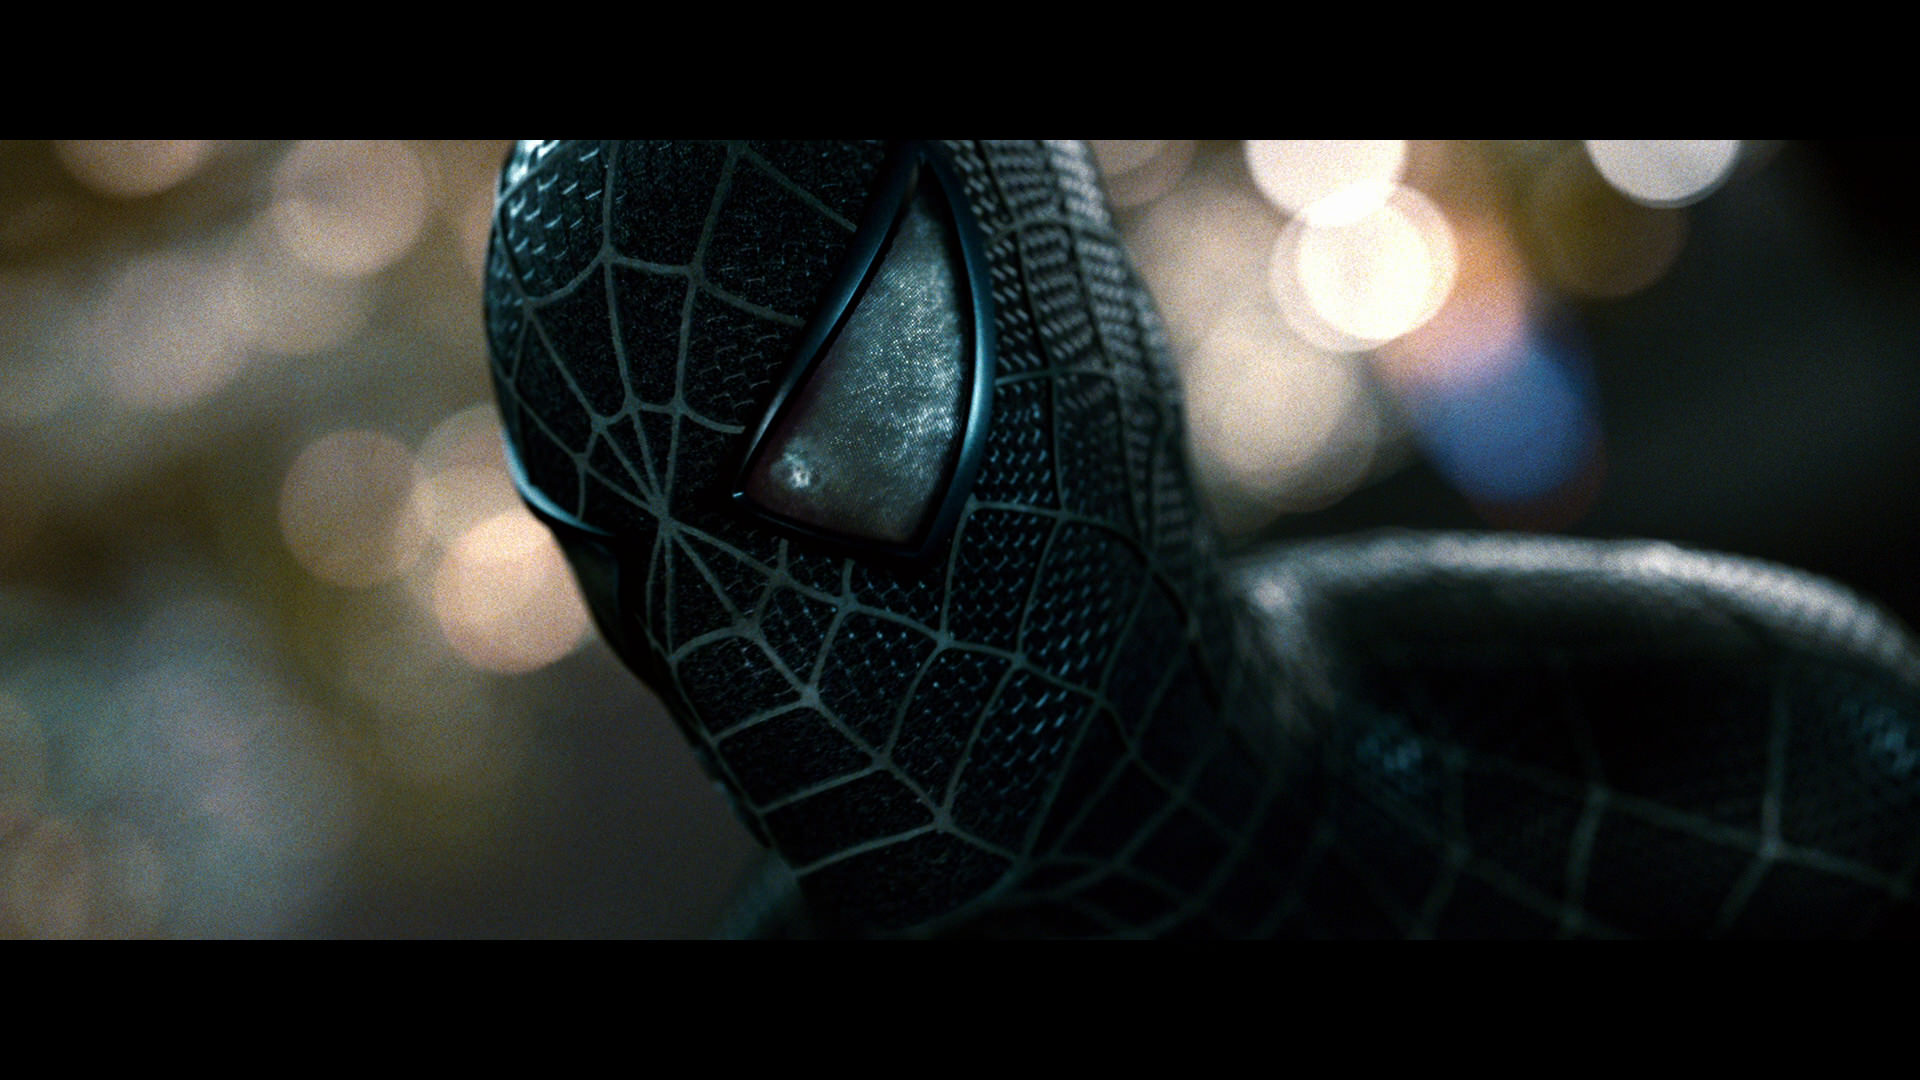 Black Spiderman Wallpaper For Free